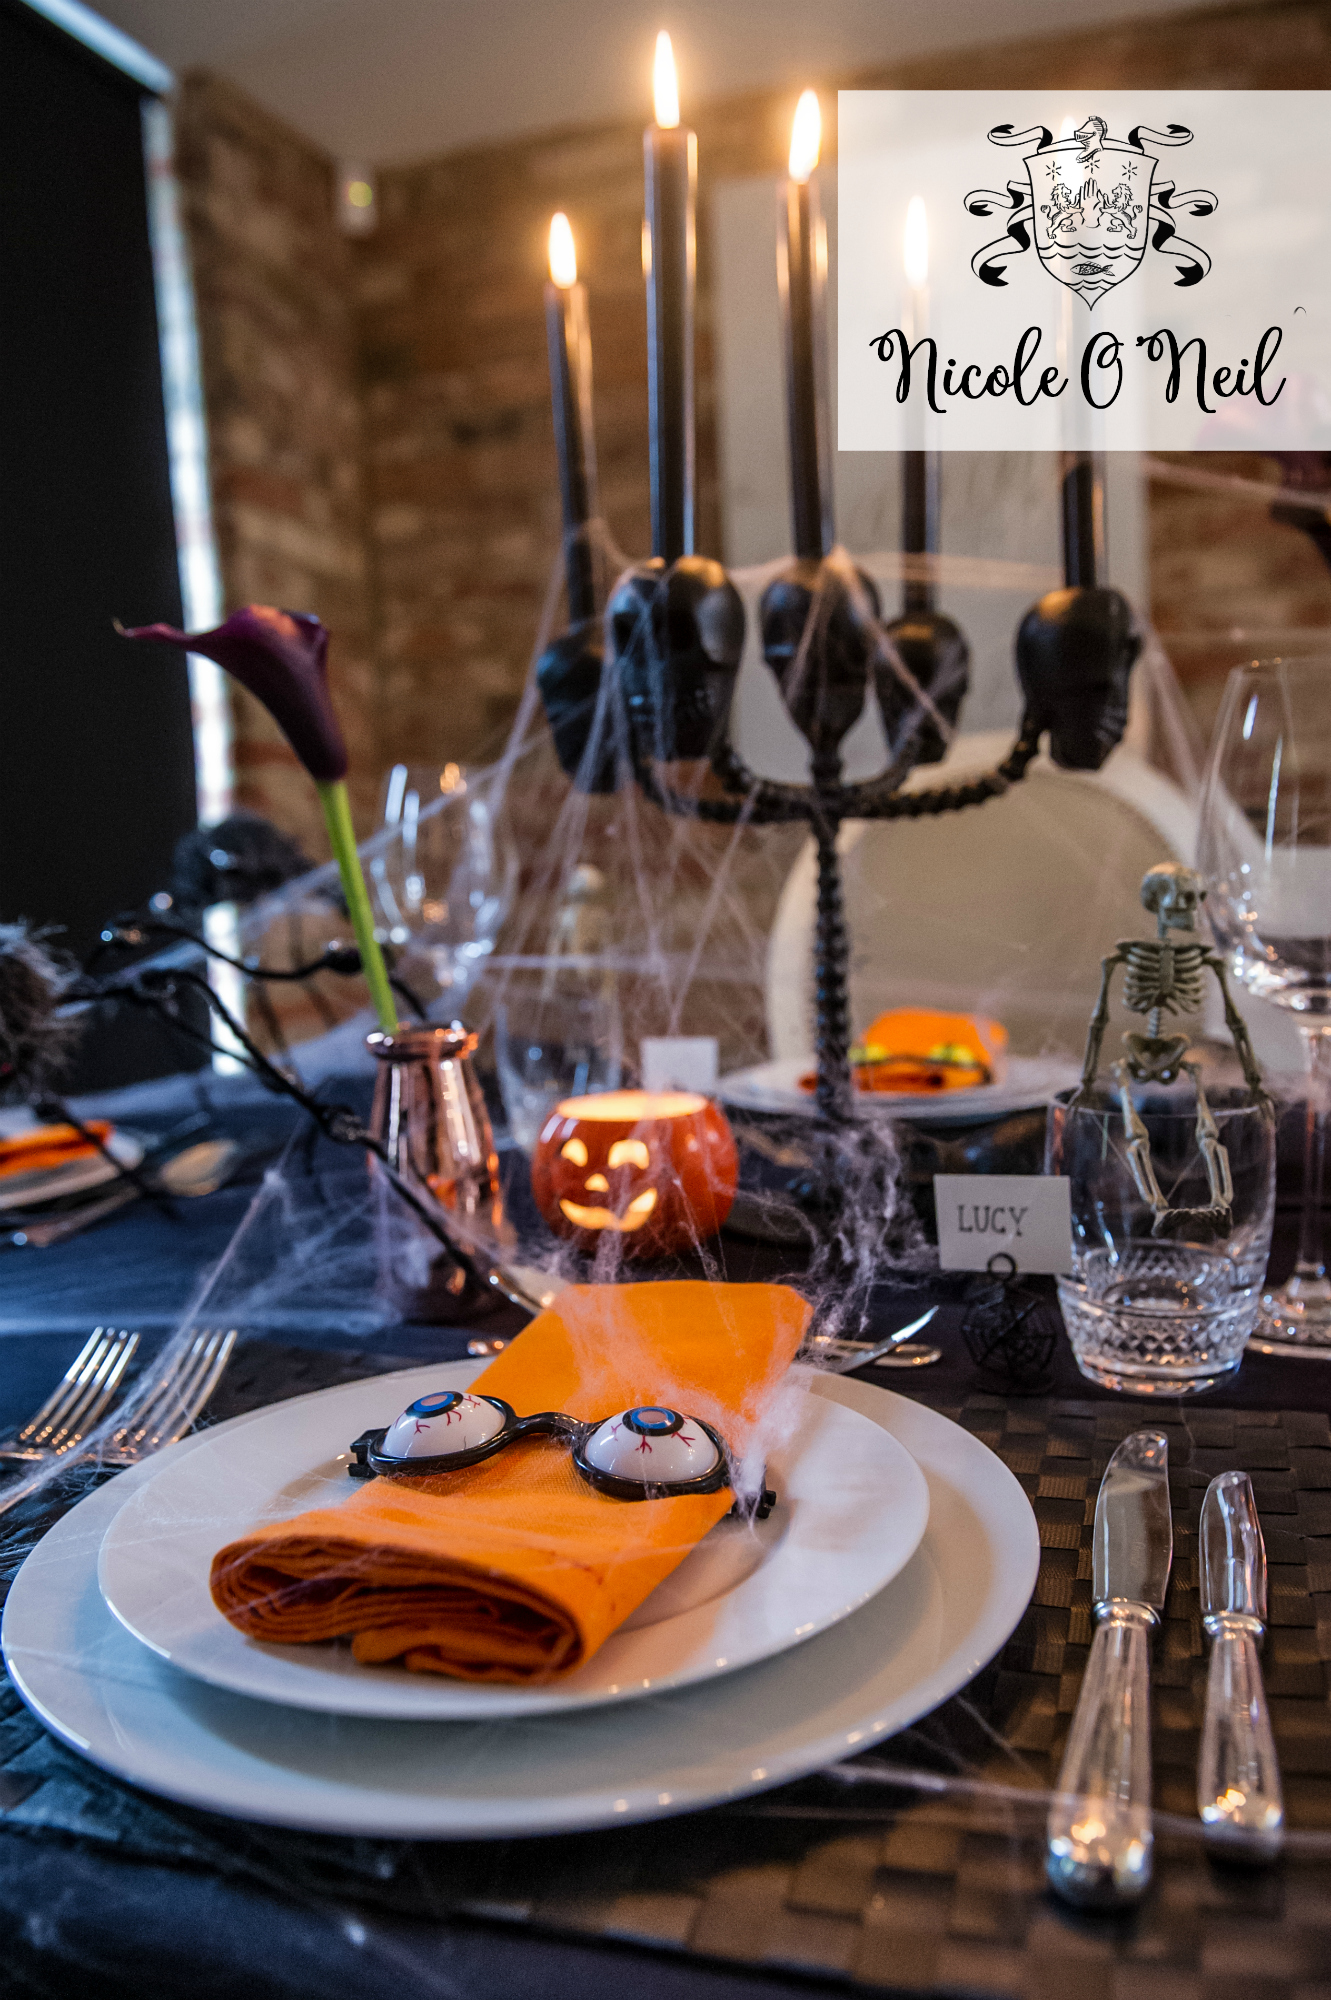 Halloween Party Decoration Ideas and Halloween Table Setting Inspiration - Skeleton Candelabra Centrepiece and Fake Spider Webs